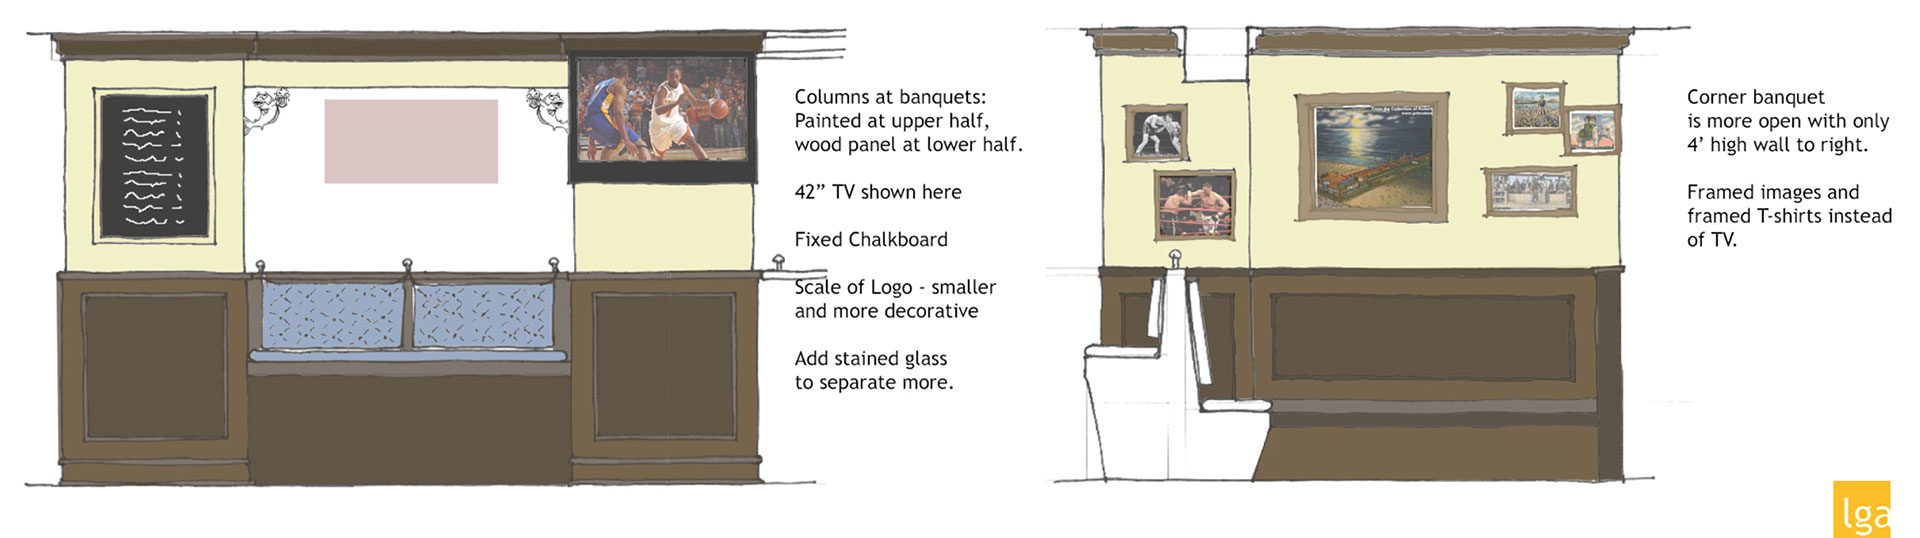 AC - 9a-harrys-booths-sketches